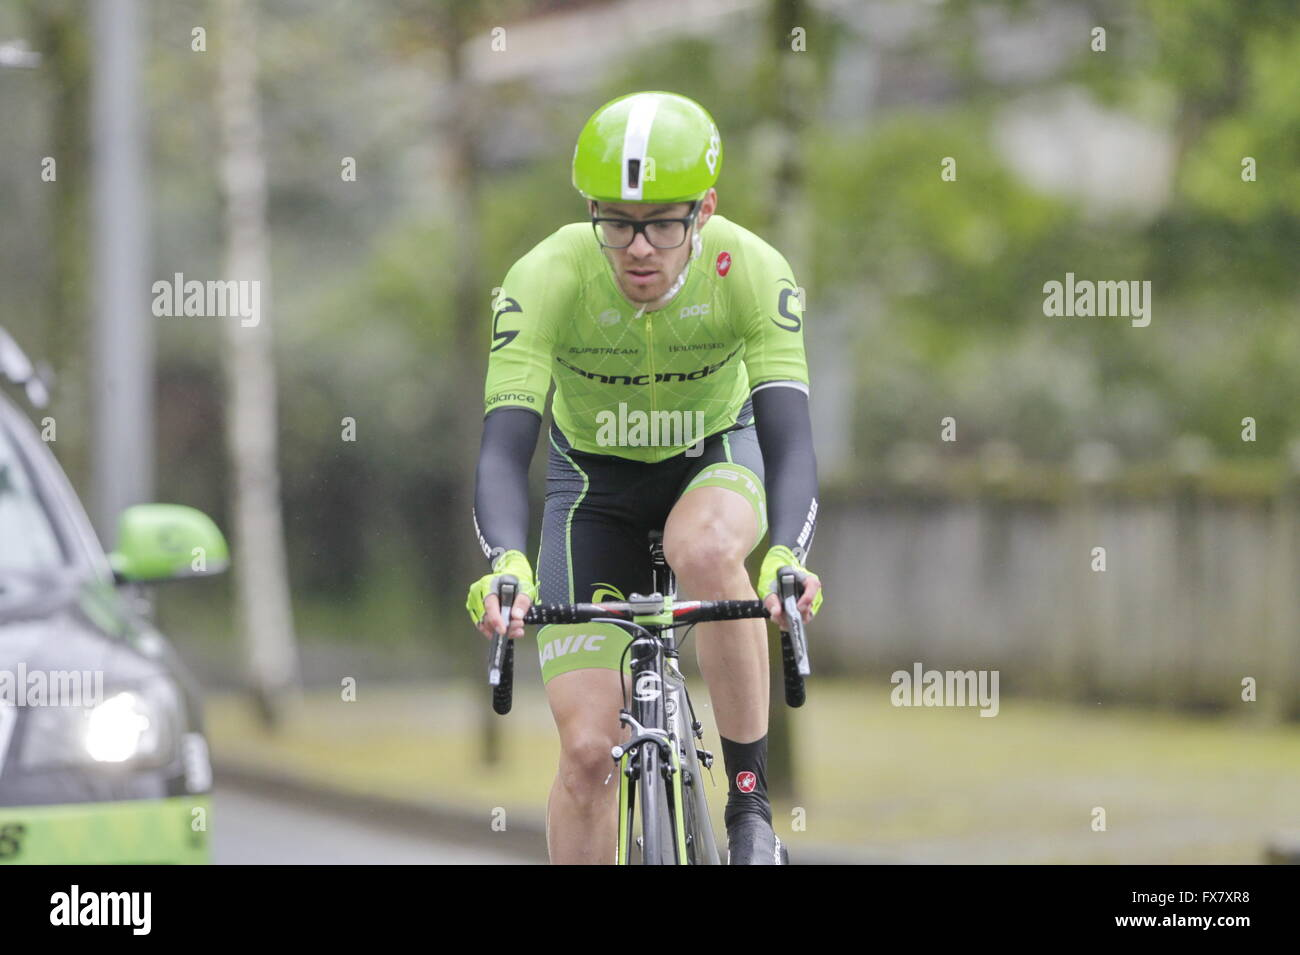 Eibar, Spain, April 9, 2016 Alex Howes  during the time trial against Eibar - Eibar of the Tour of the Basque Country - Stock Image